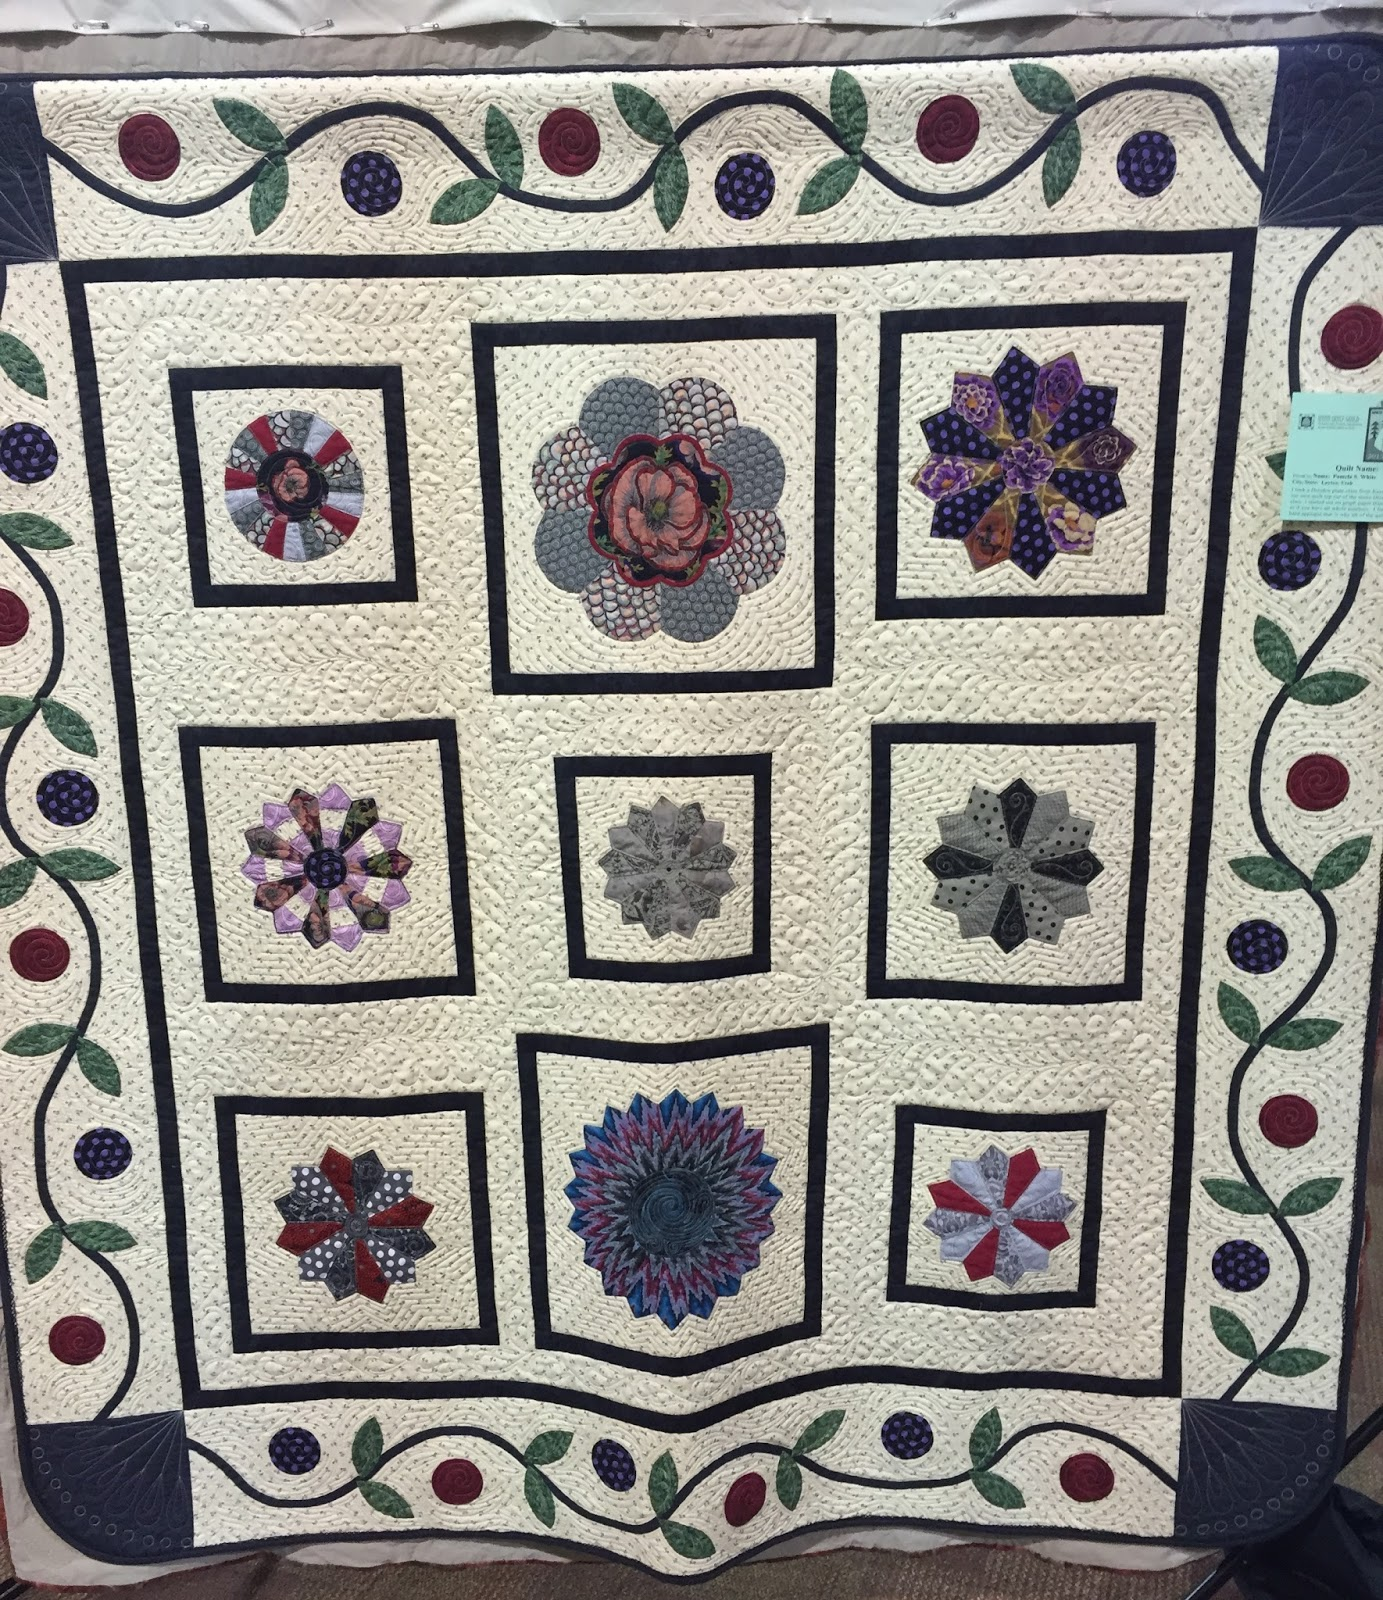 Sew Fun 2 Quilt: Are You Ready for Christmas??